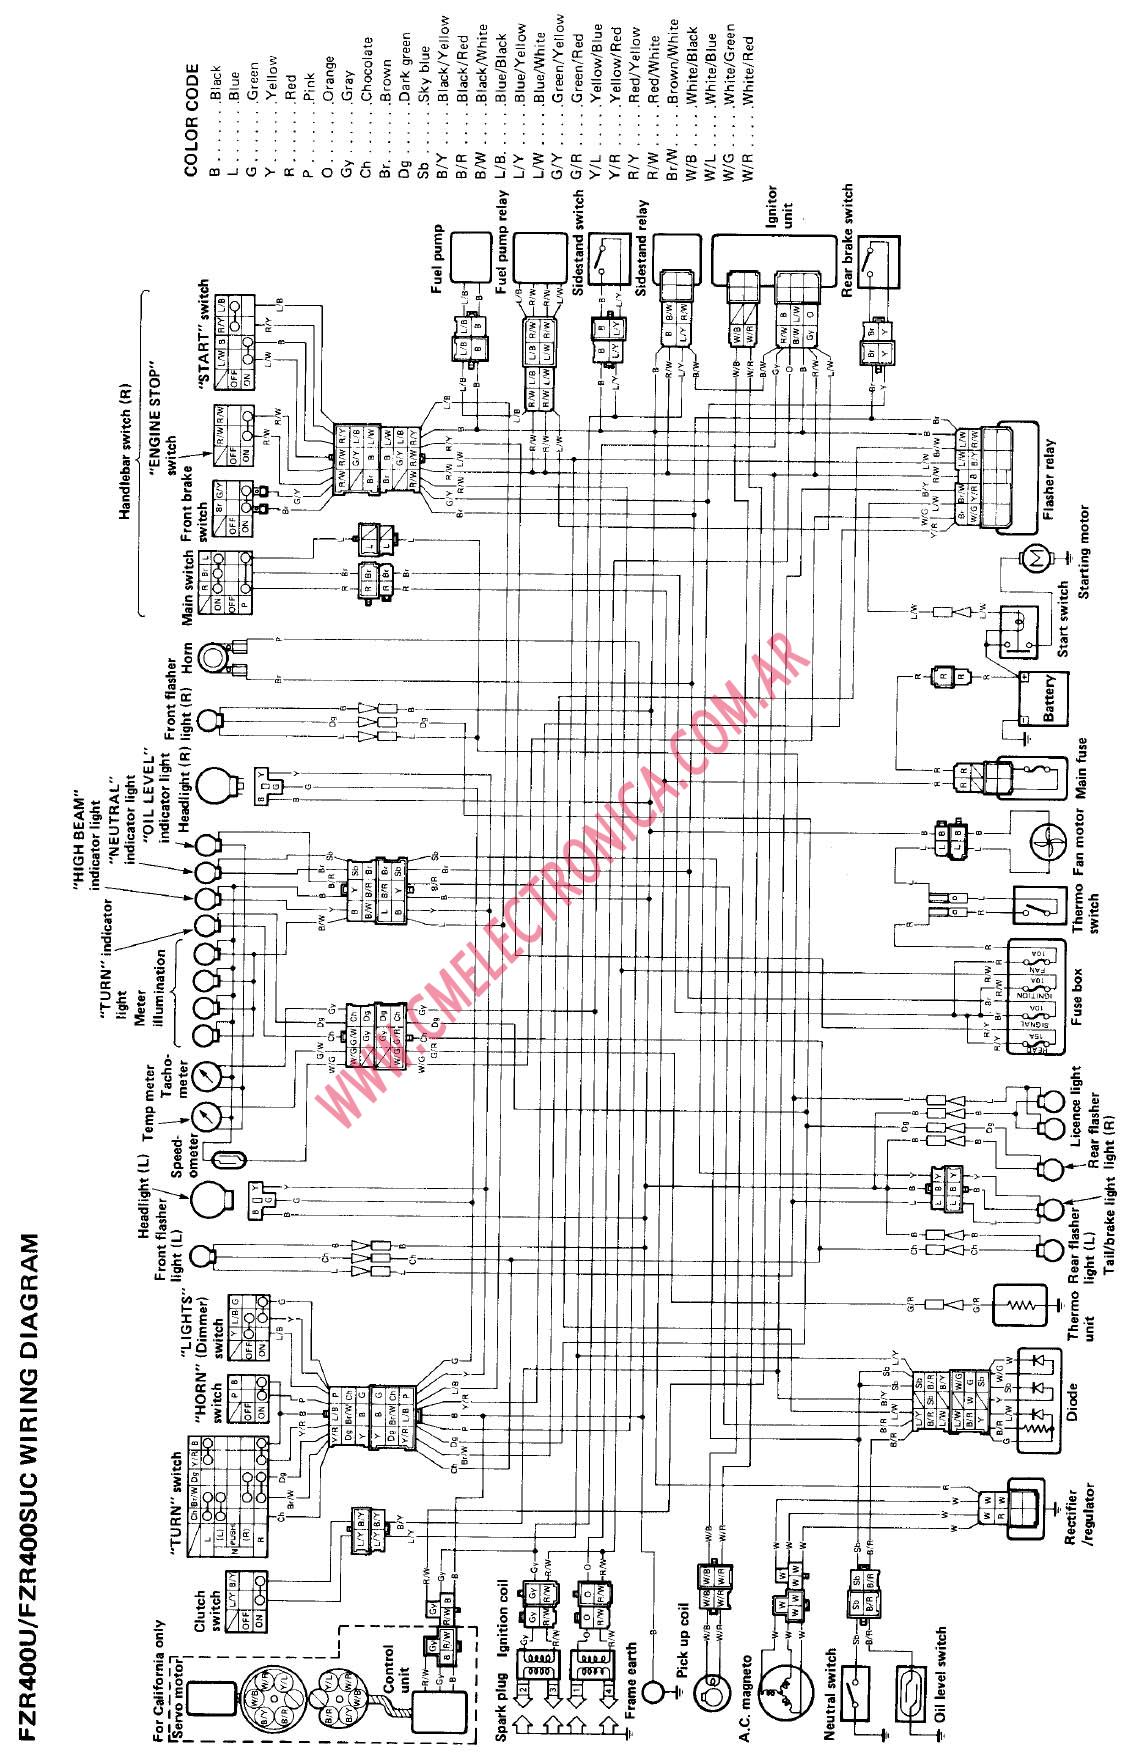 New Kawasaki Jet Ski furthermore 1993 VW Corrado Wiring Diagram furthermore E Flat Guitar Chord moreover 1982 Yamaha Maxim 1100 Wiring Diagram in addition 1999 Harley Davidson Wiring Diagrams. on yamaha 1100 wiring diagrams